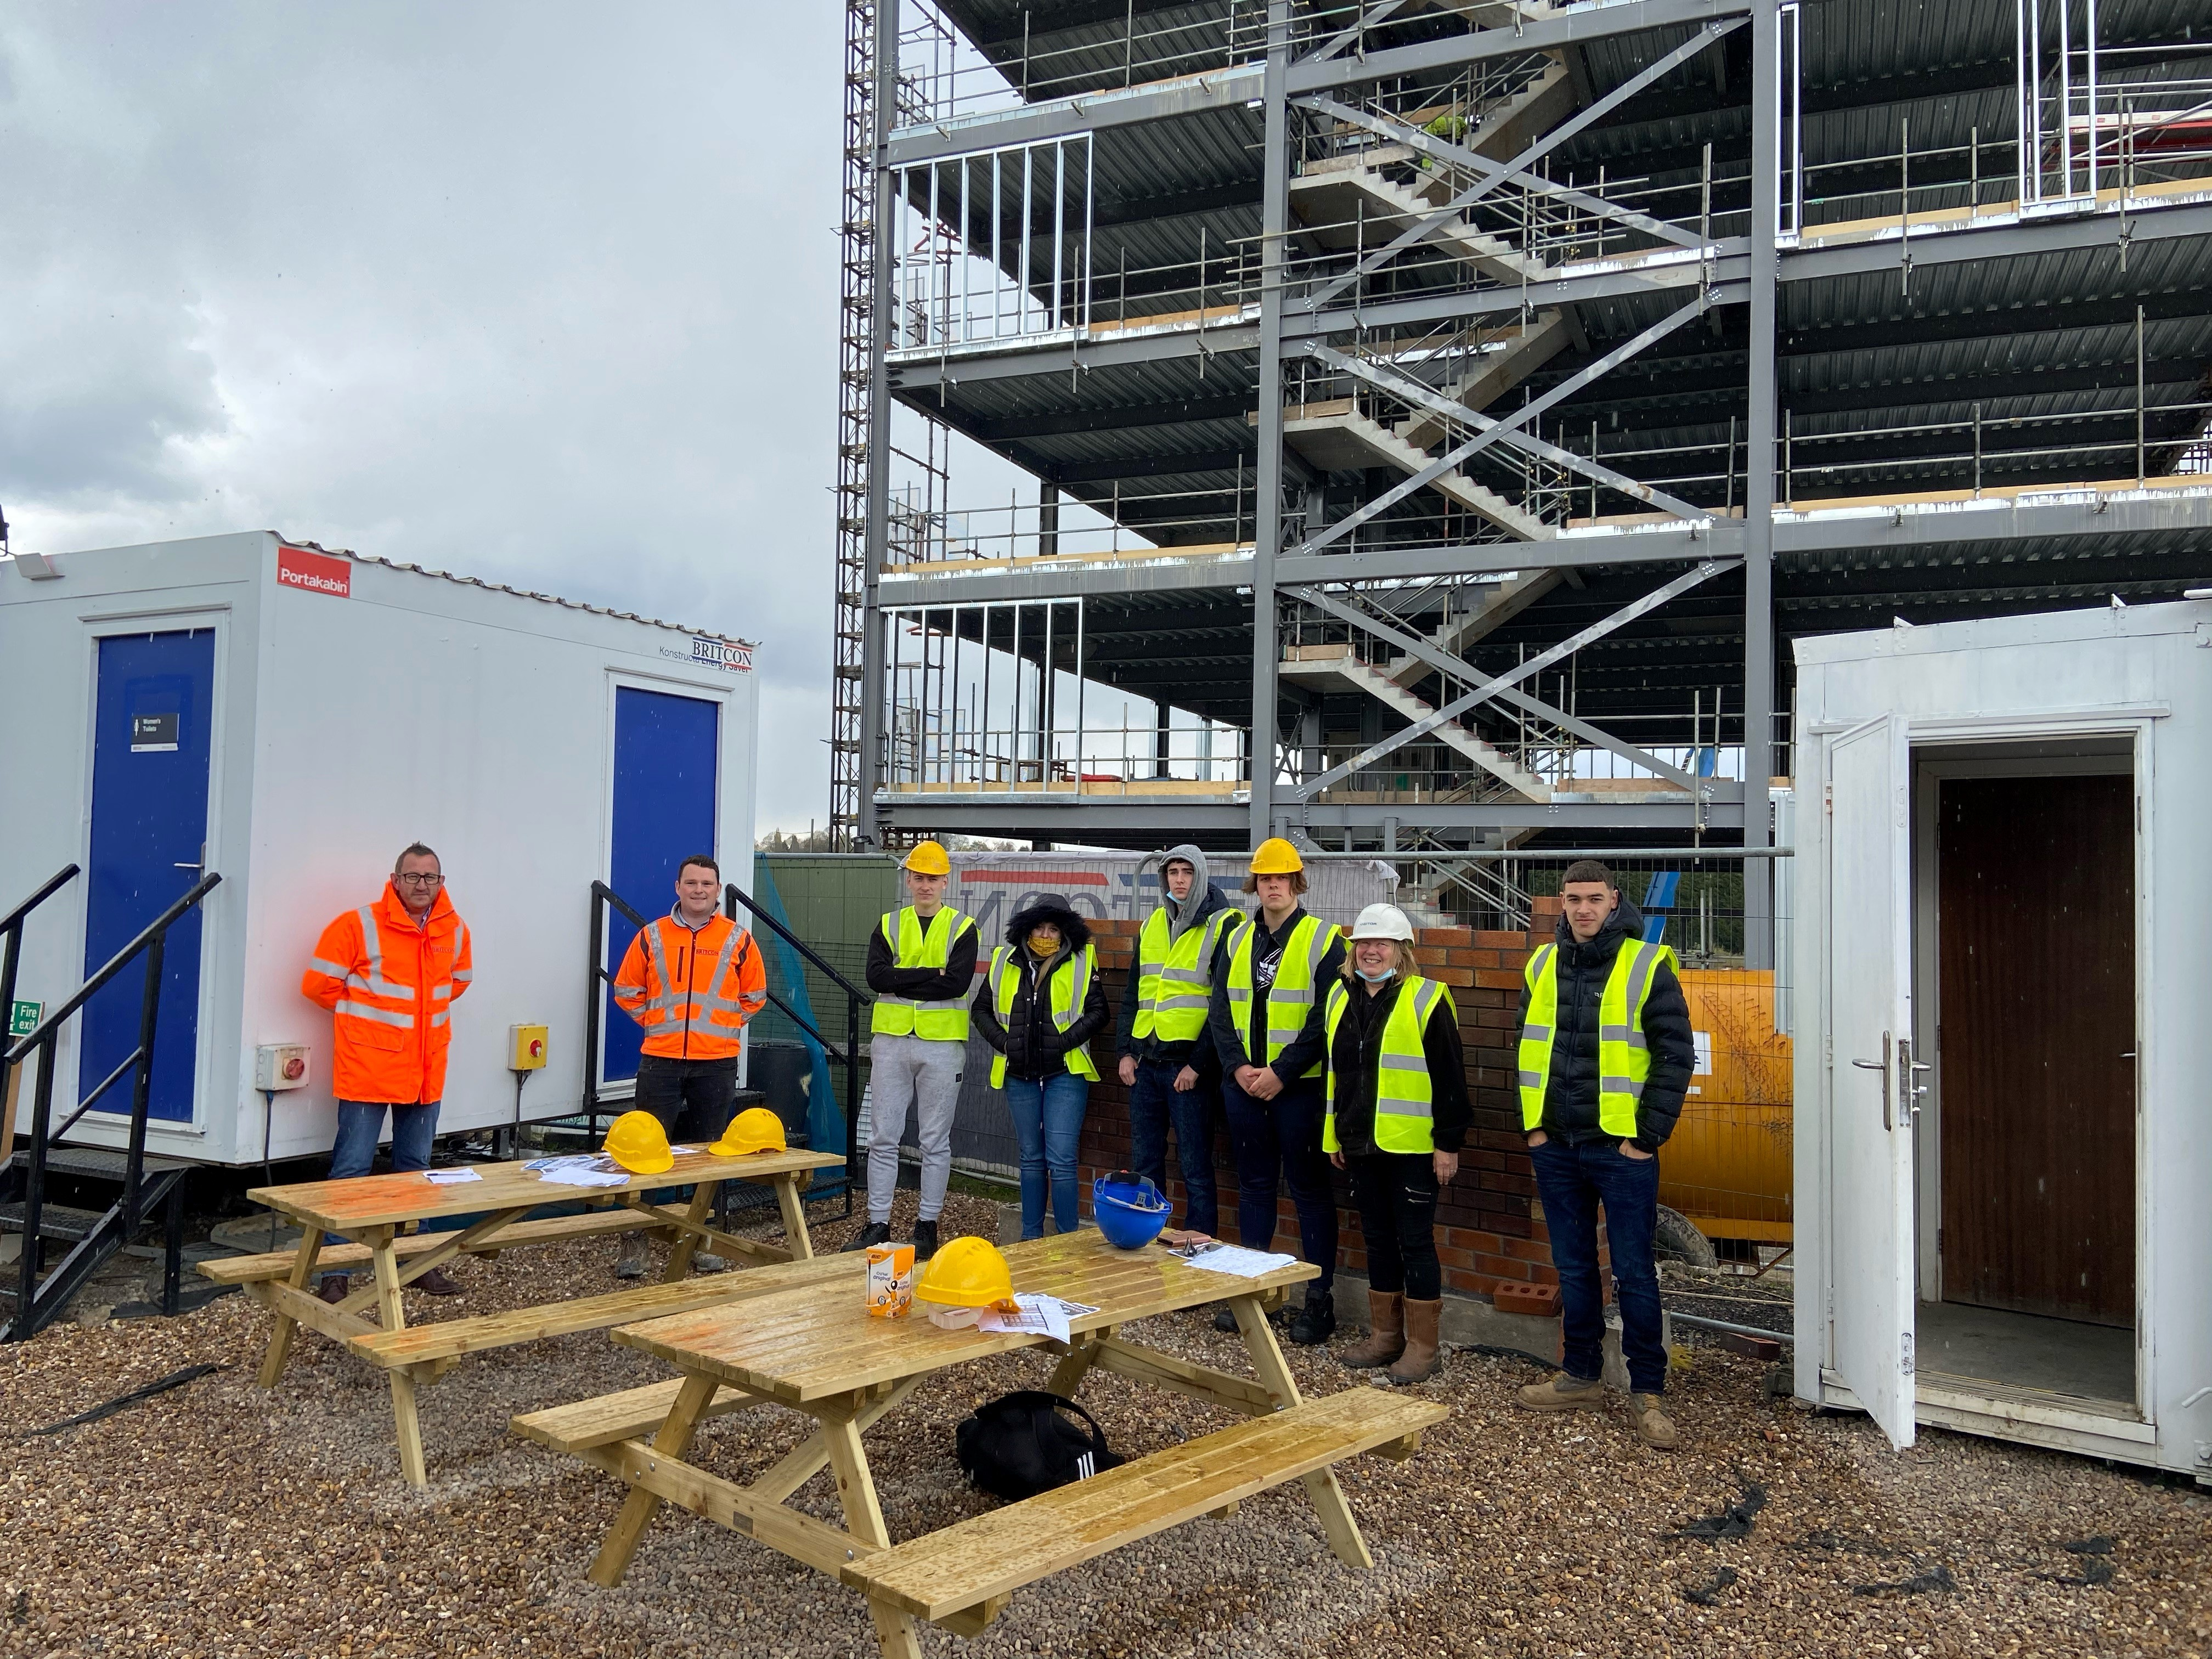 Britcon welcomes Chesterfield College construction students to One Waterside Place site